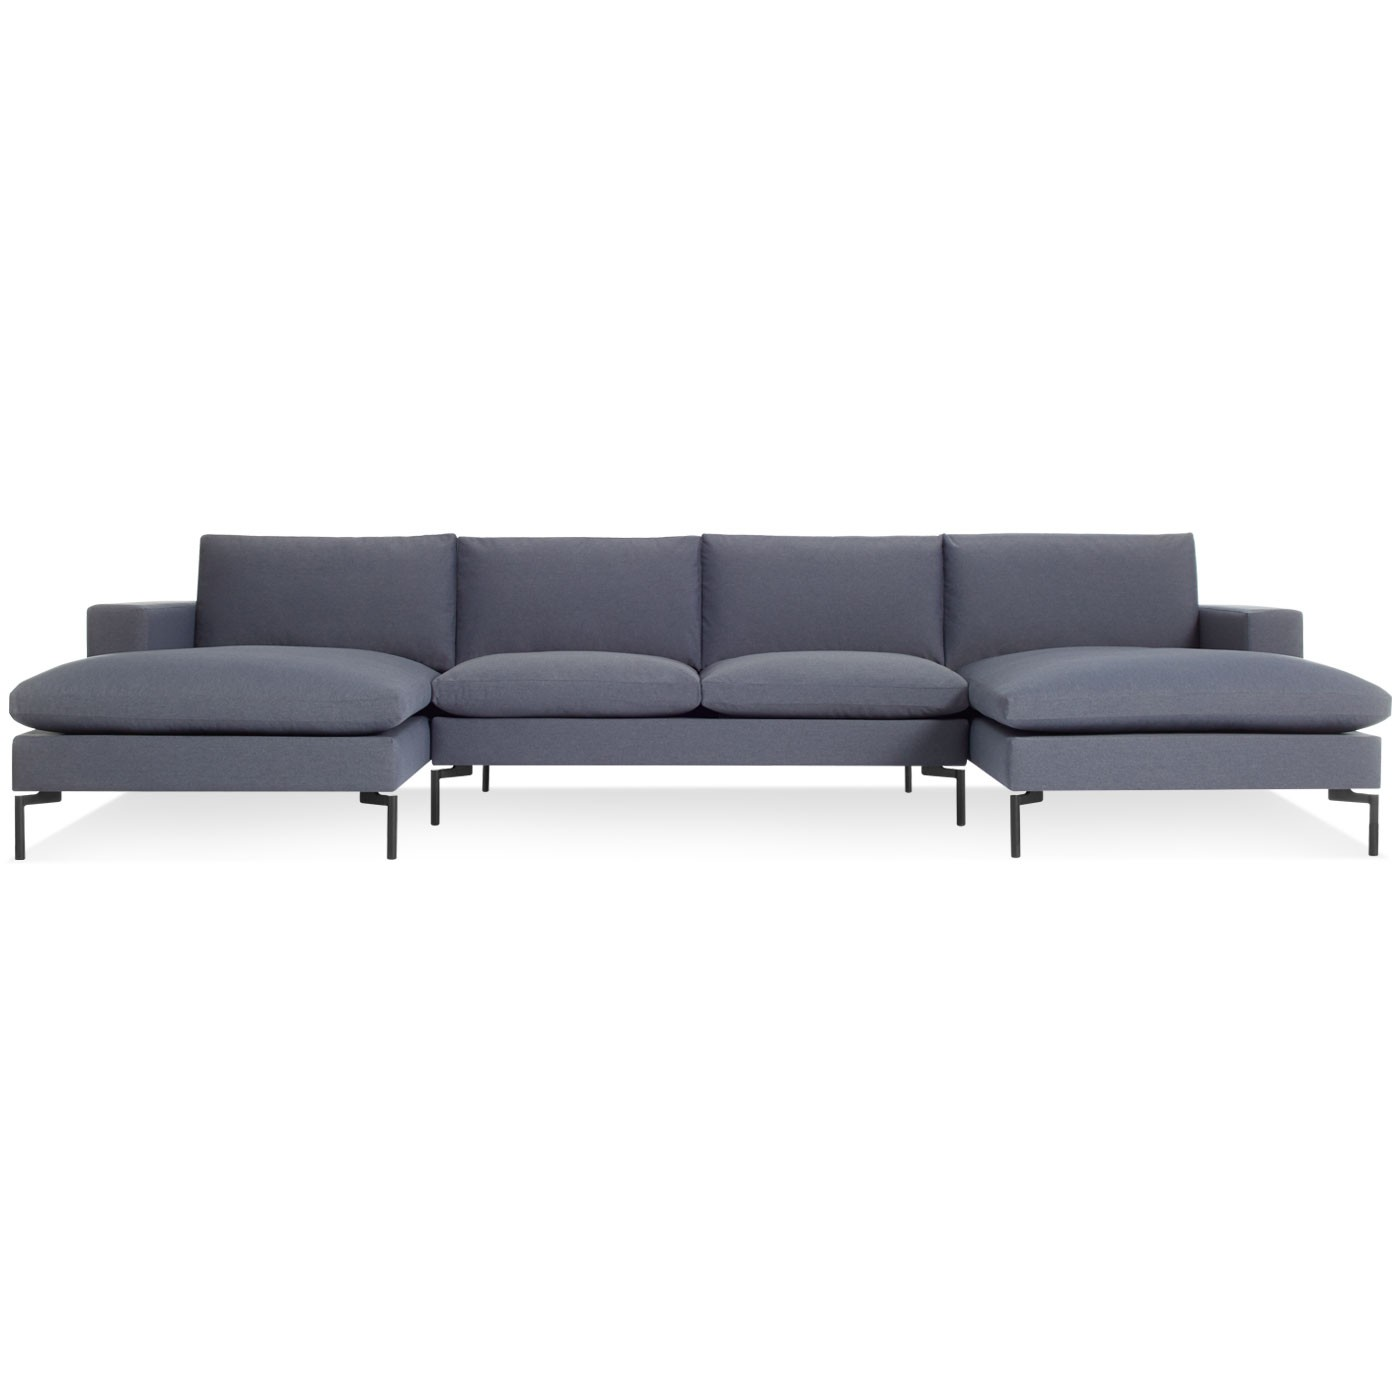 New Standard U-Shaped Sectional Sofa by Blu Dot — Hub Modern Home +  GiftPost — Hub Modern Home + Gift